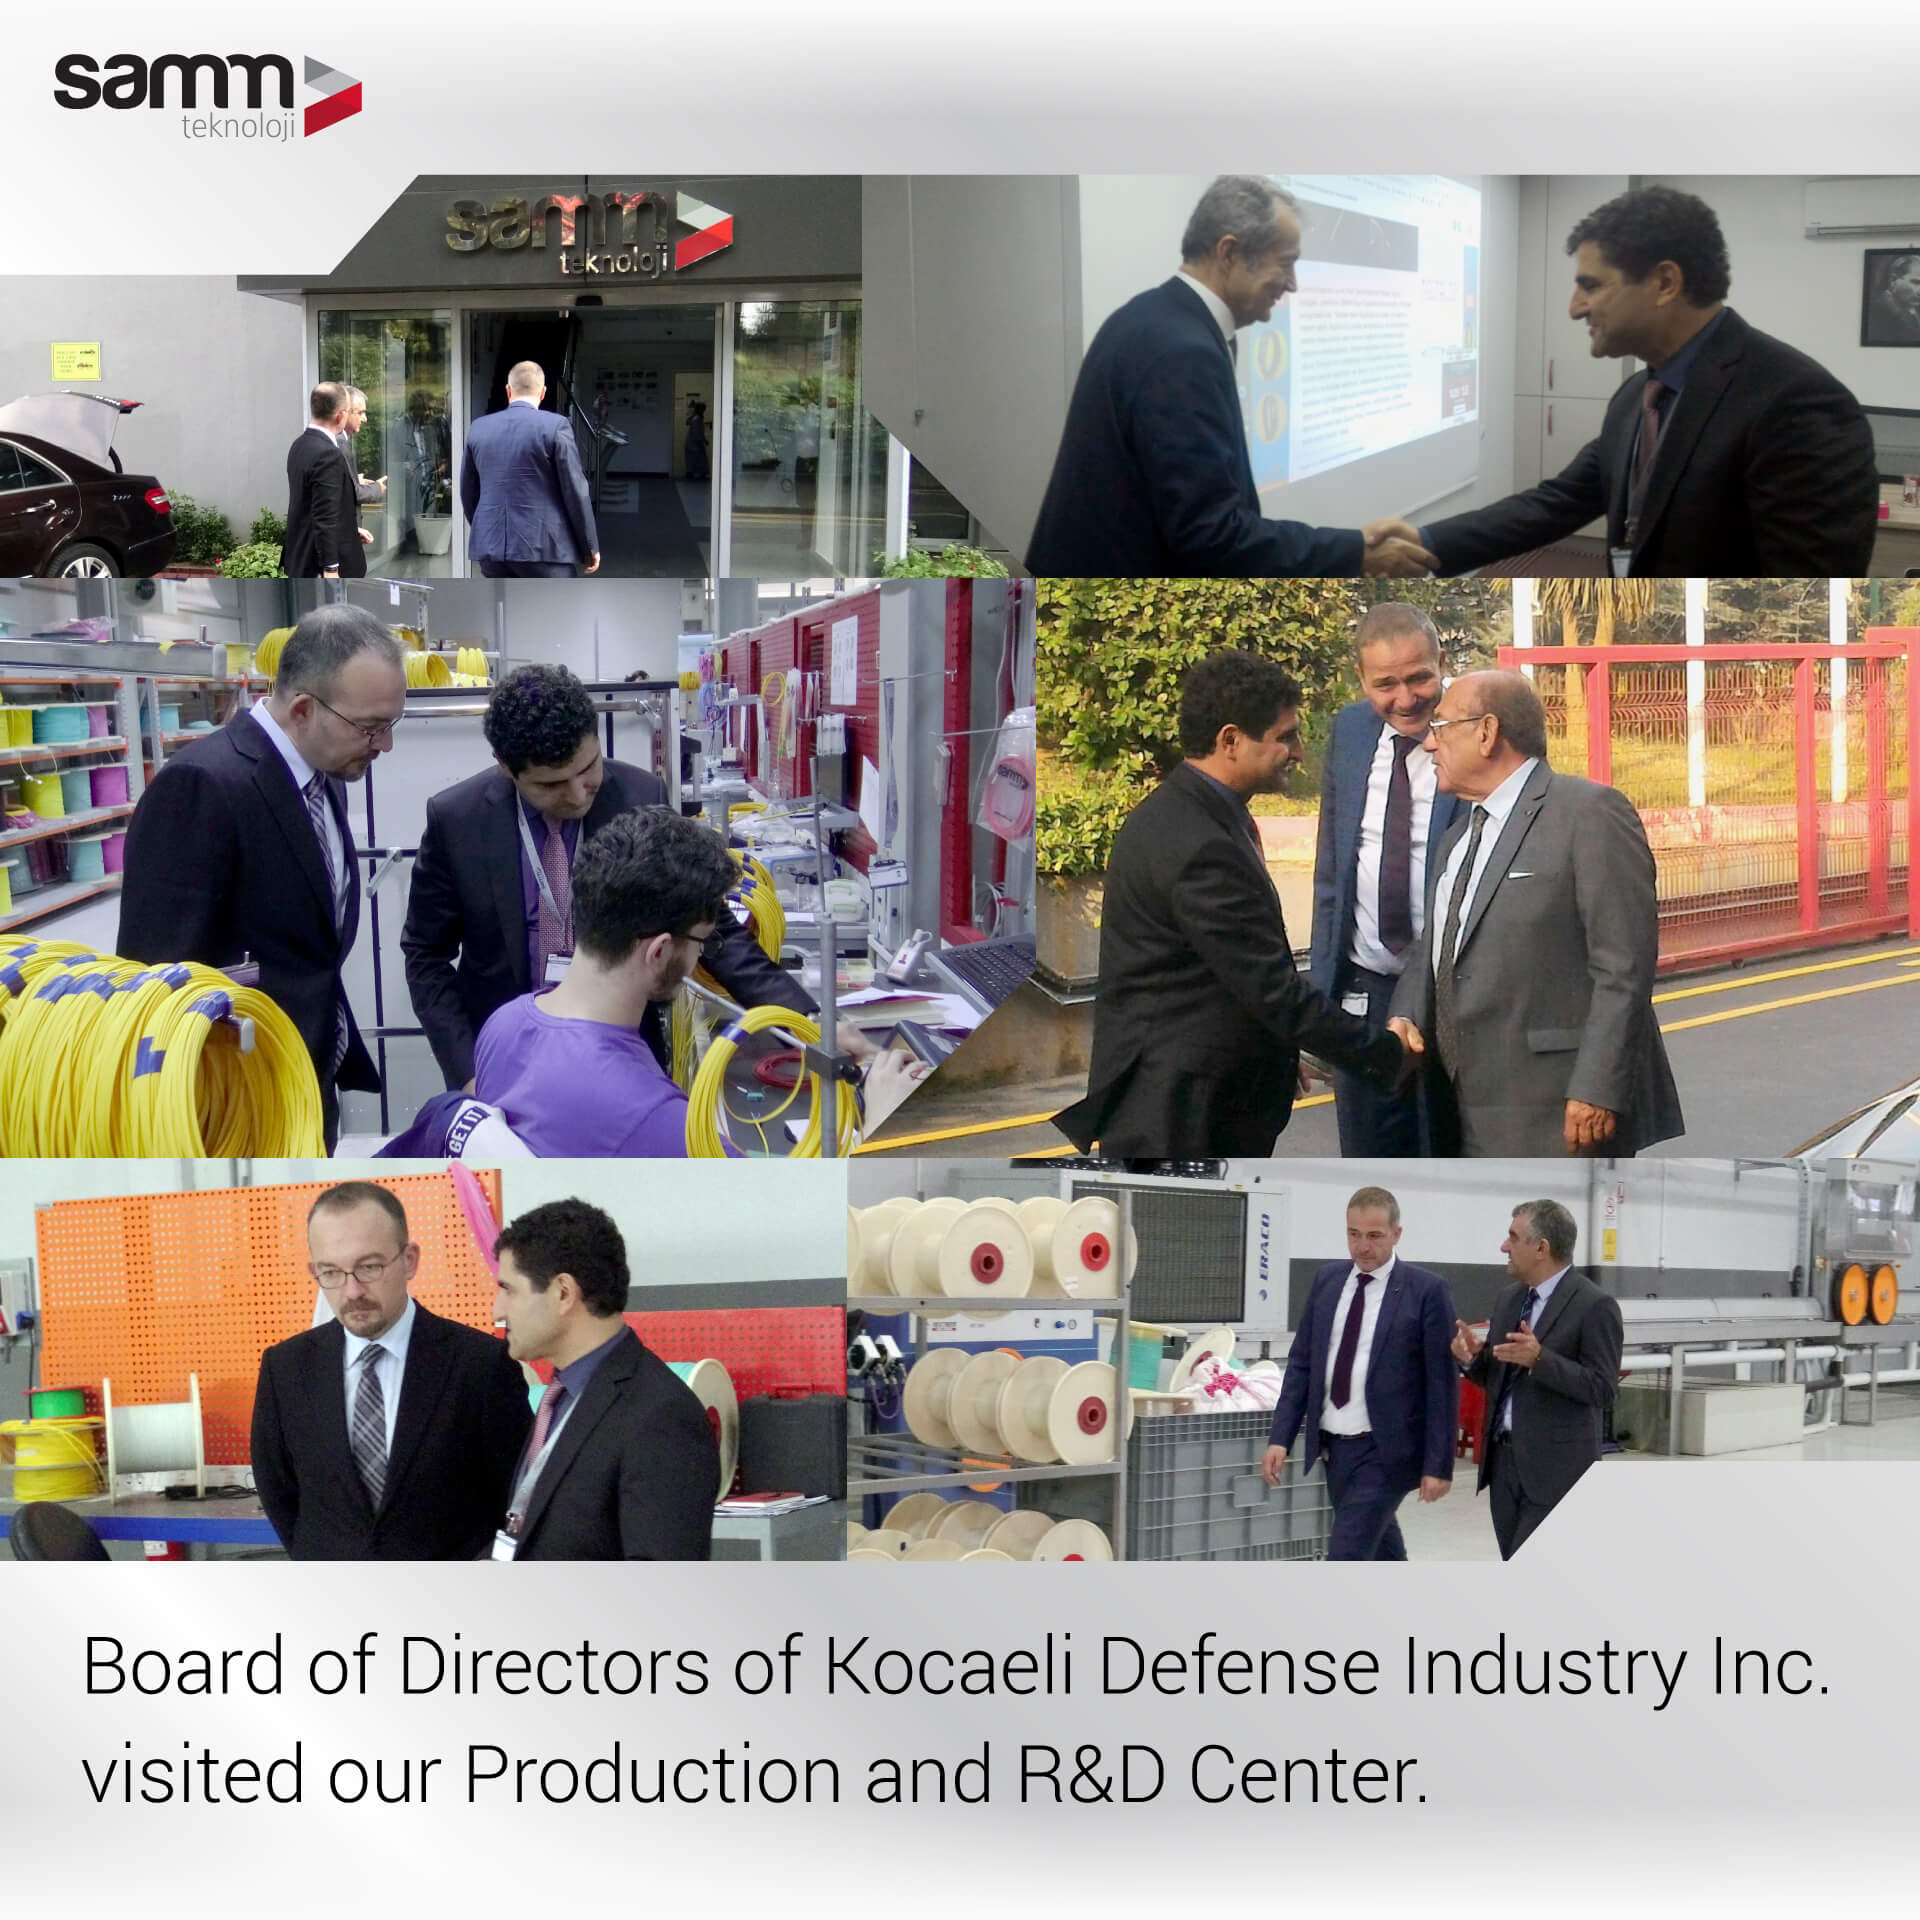 The Board of Directors of Kocaeli Defense Industry Inc.visited our Production and R&D Center.